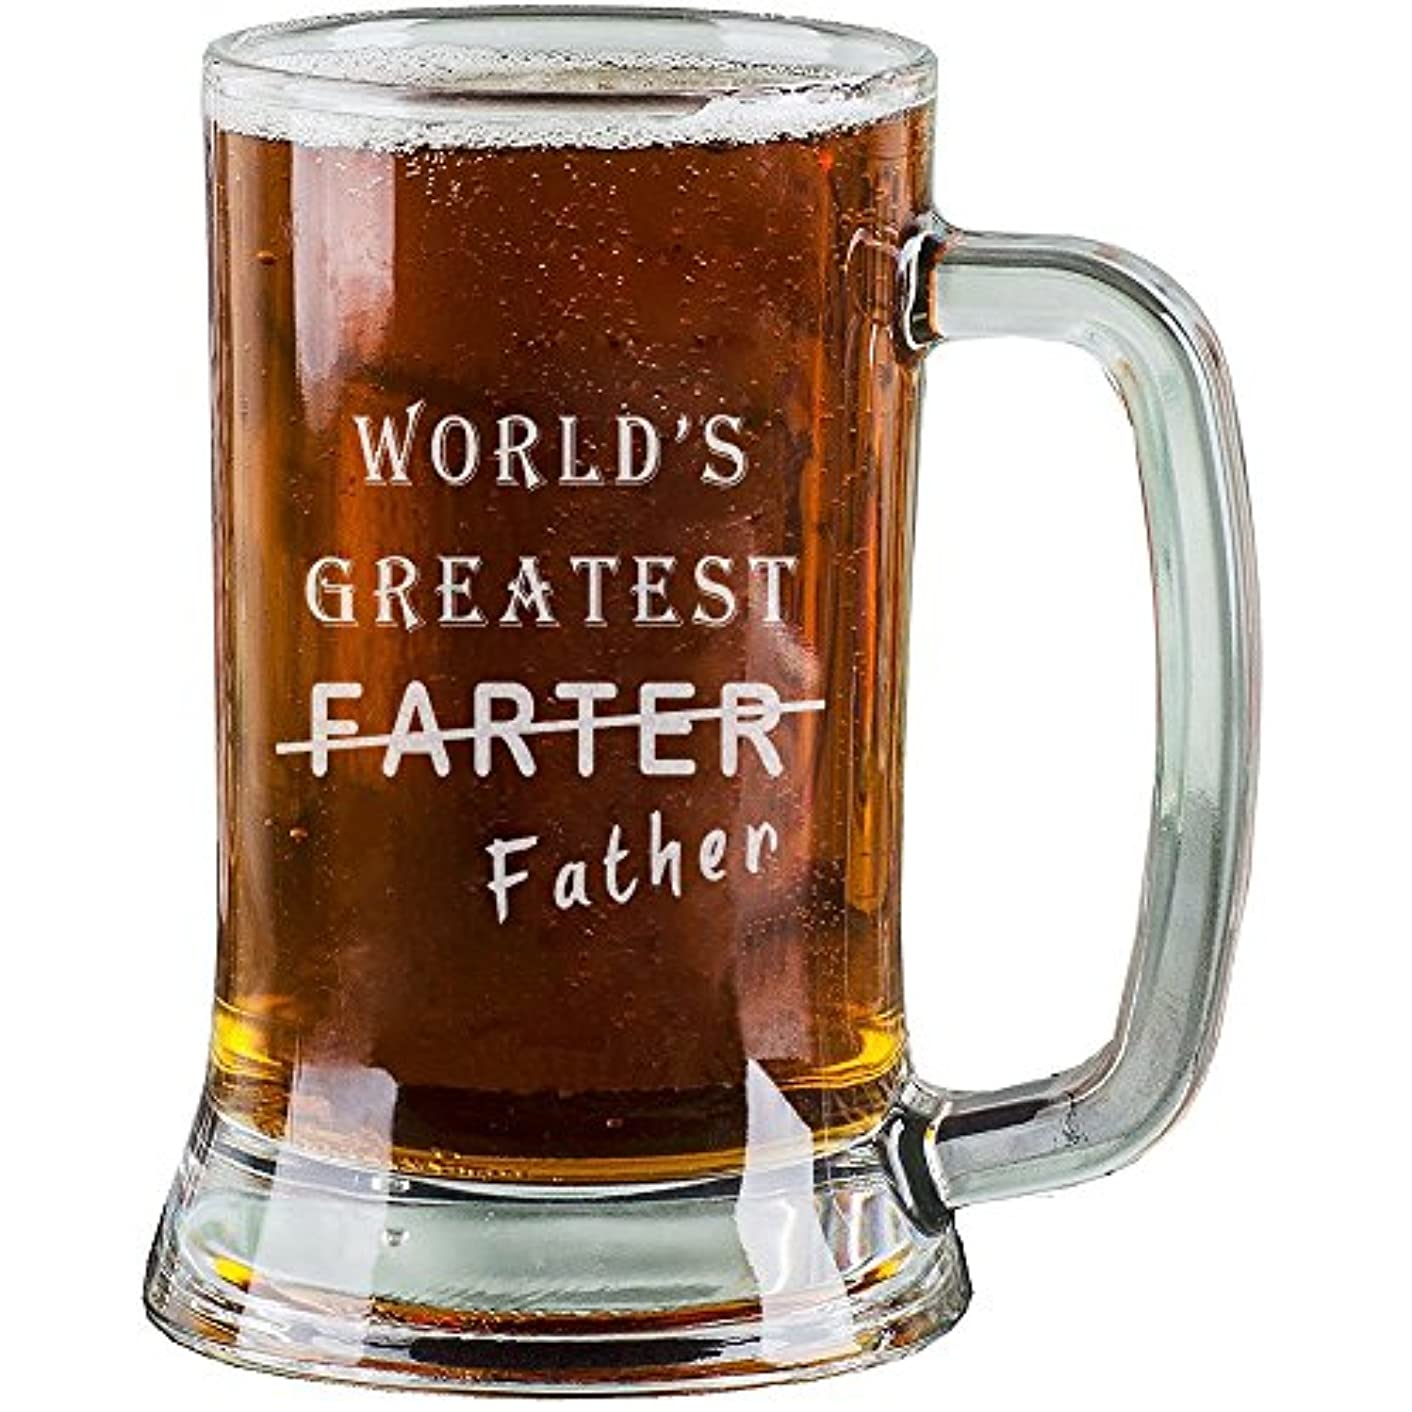 AnnaStoree 16 Oz Personalized Beer Mugs Etched Engraved with WORLD'S GREATEST FARTER Father Funny Beer Mugs for Dad Gift